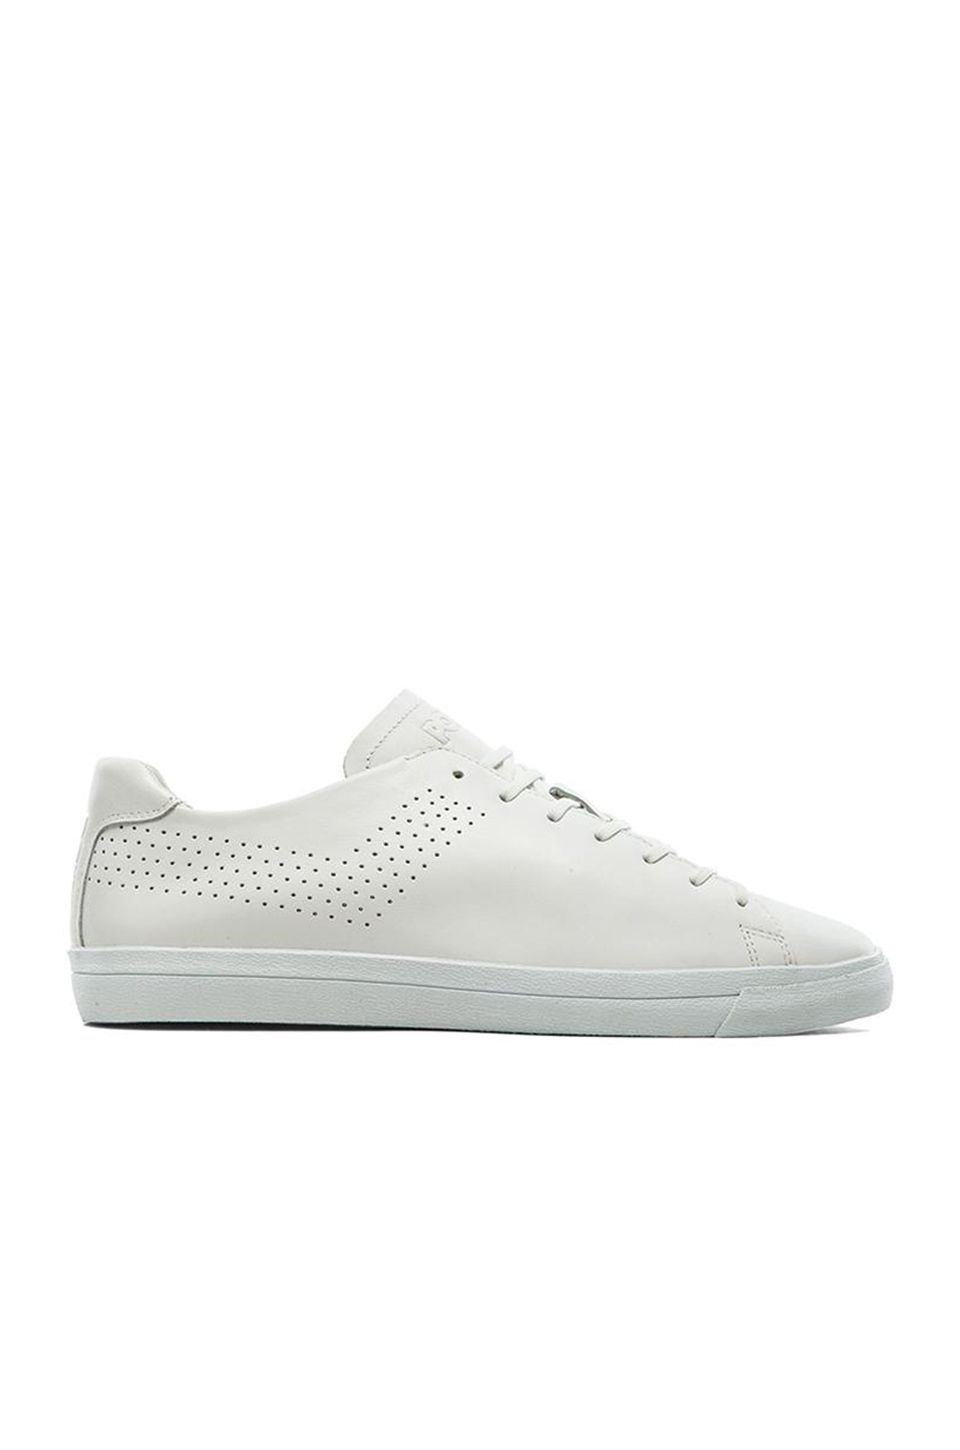 on sale e50f1 fd0cb Pony Topstar OX Deconstructed Leather in White White